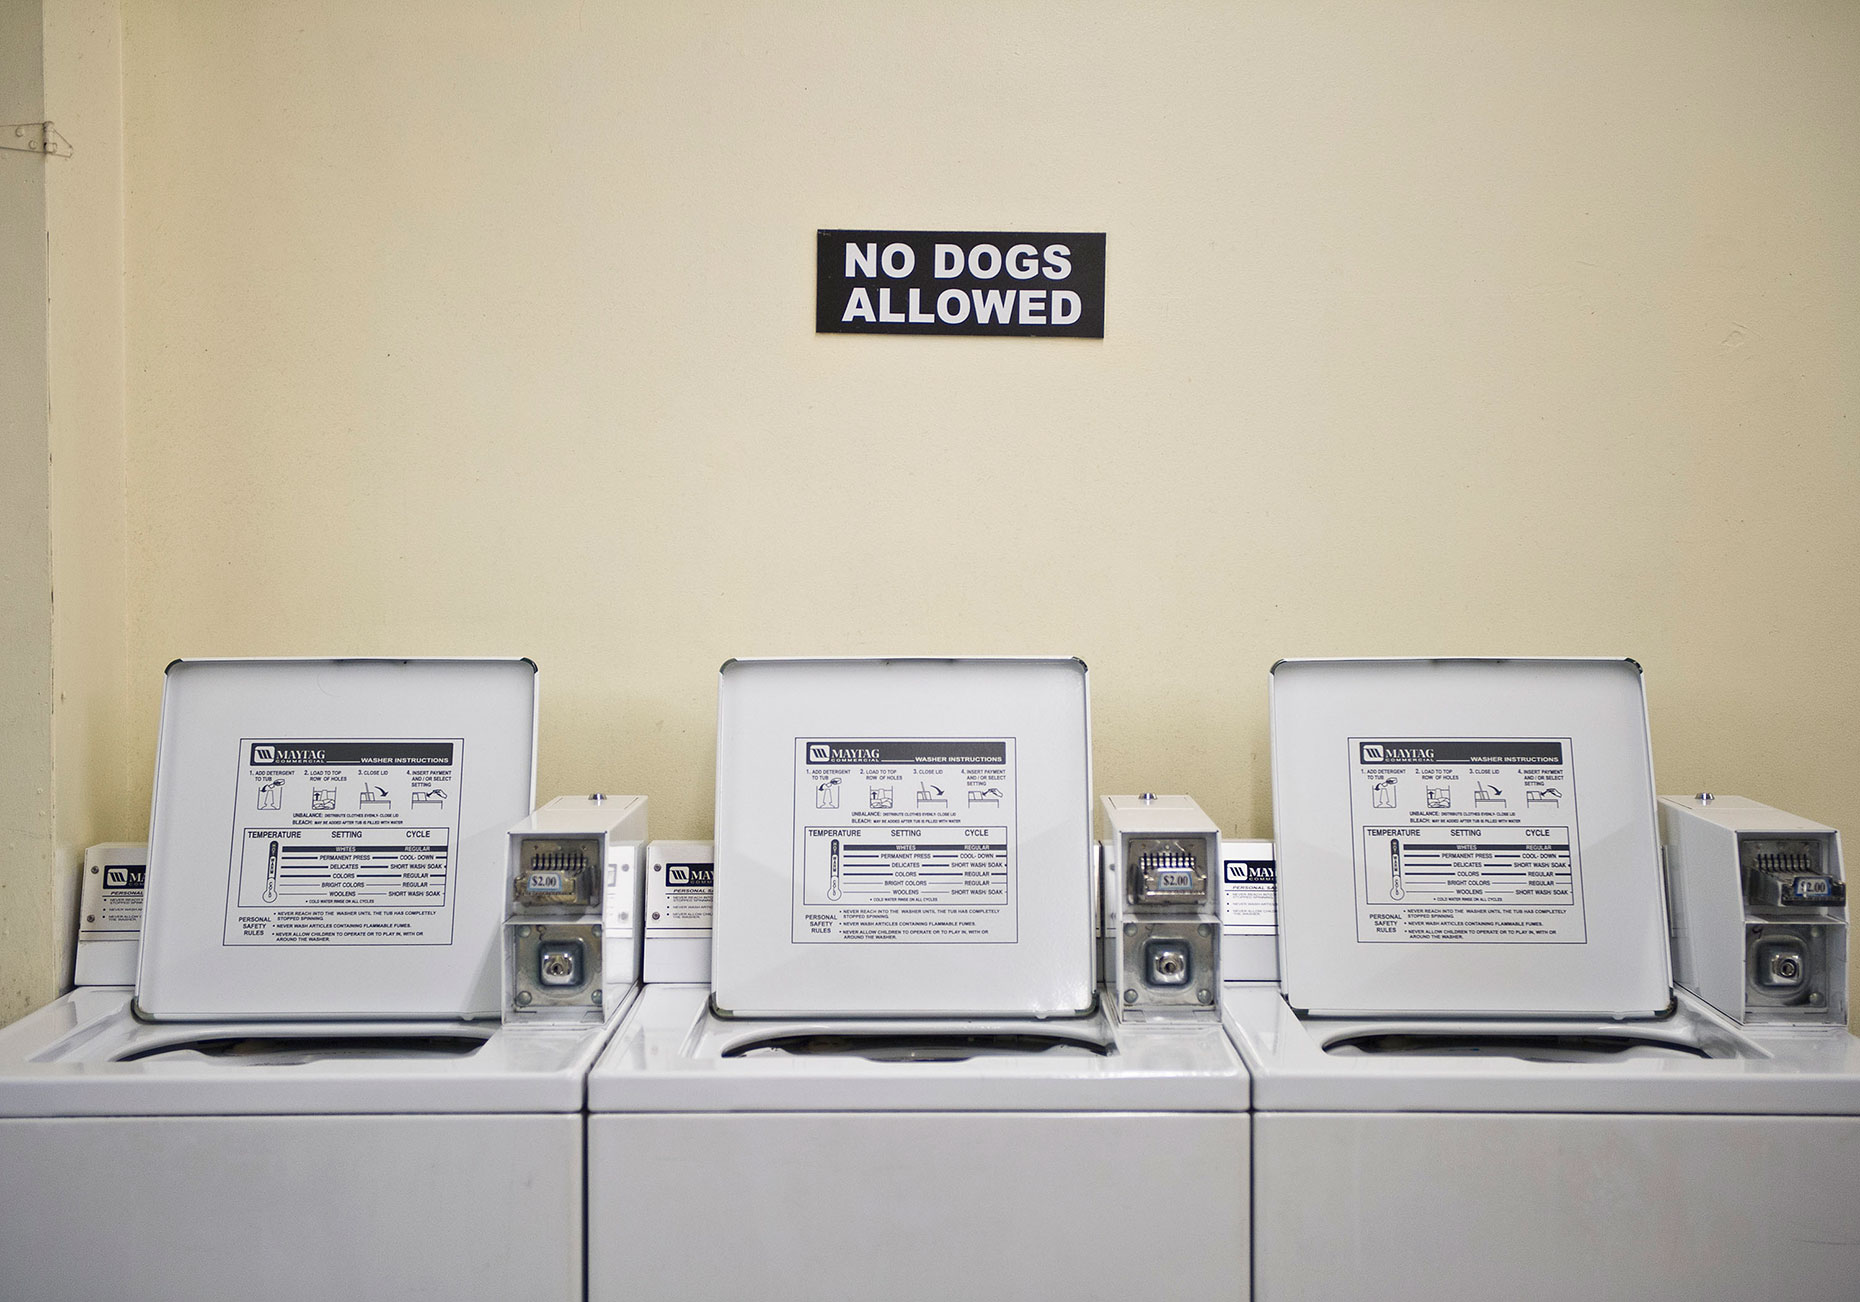 PAR_PhotoReporters_no-dogs-in-laundry-machines